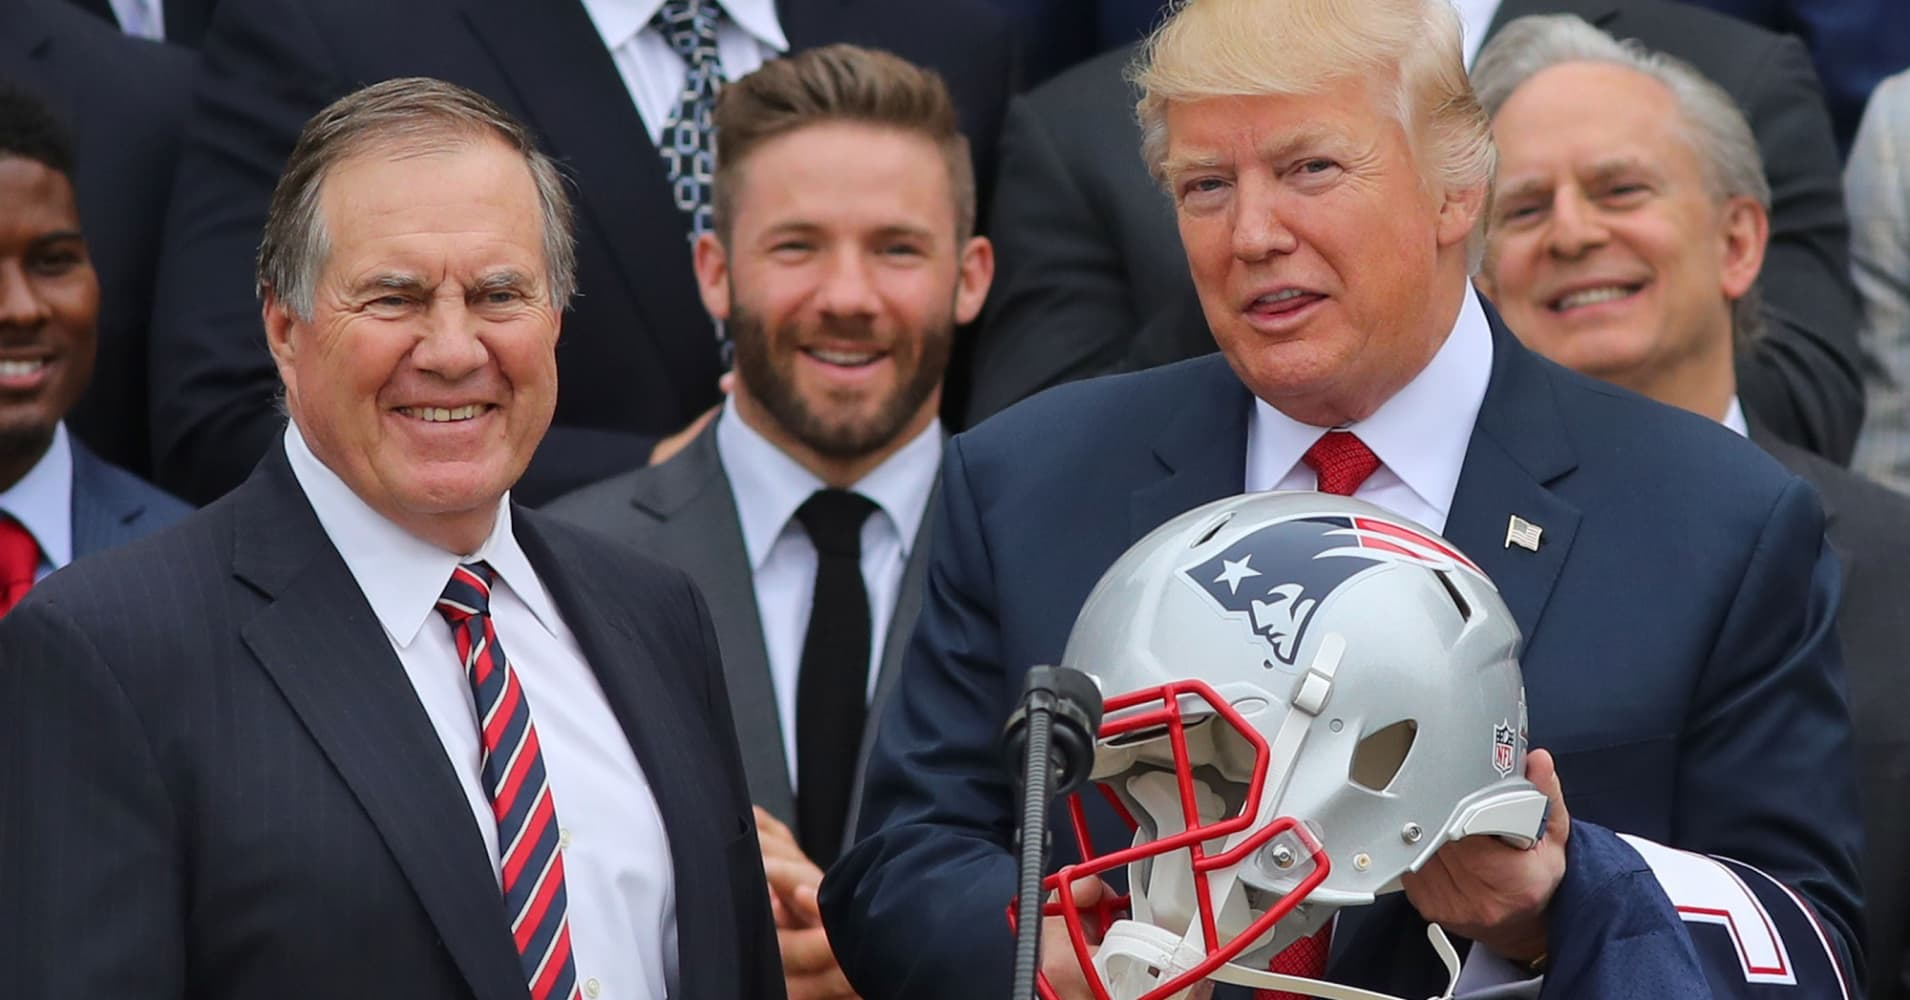 President Donald Trump holds a New England Patriots helmet as Patriots head coach Bill Belichick, left, and Patriots player Julian Edelman, rear, look on during a ceremony at the White House in Washington D.C. on Apr. 19,. 2017.